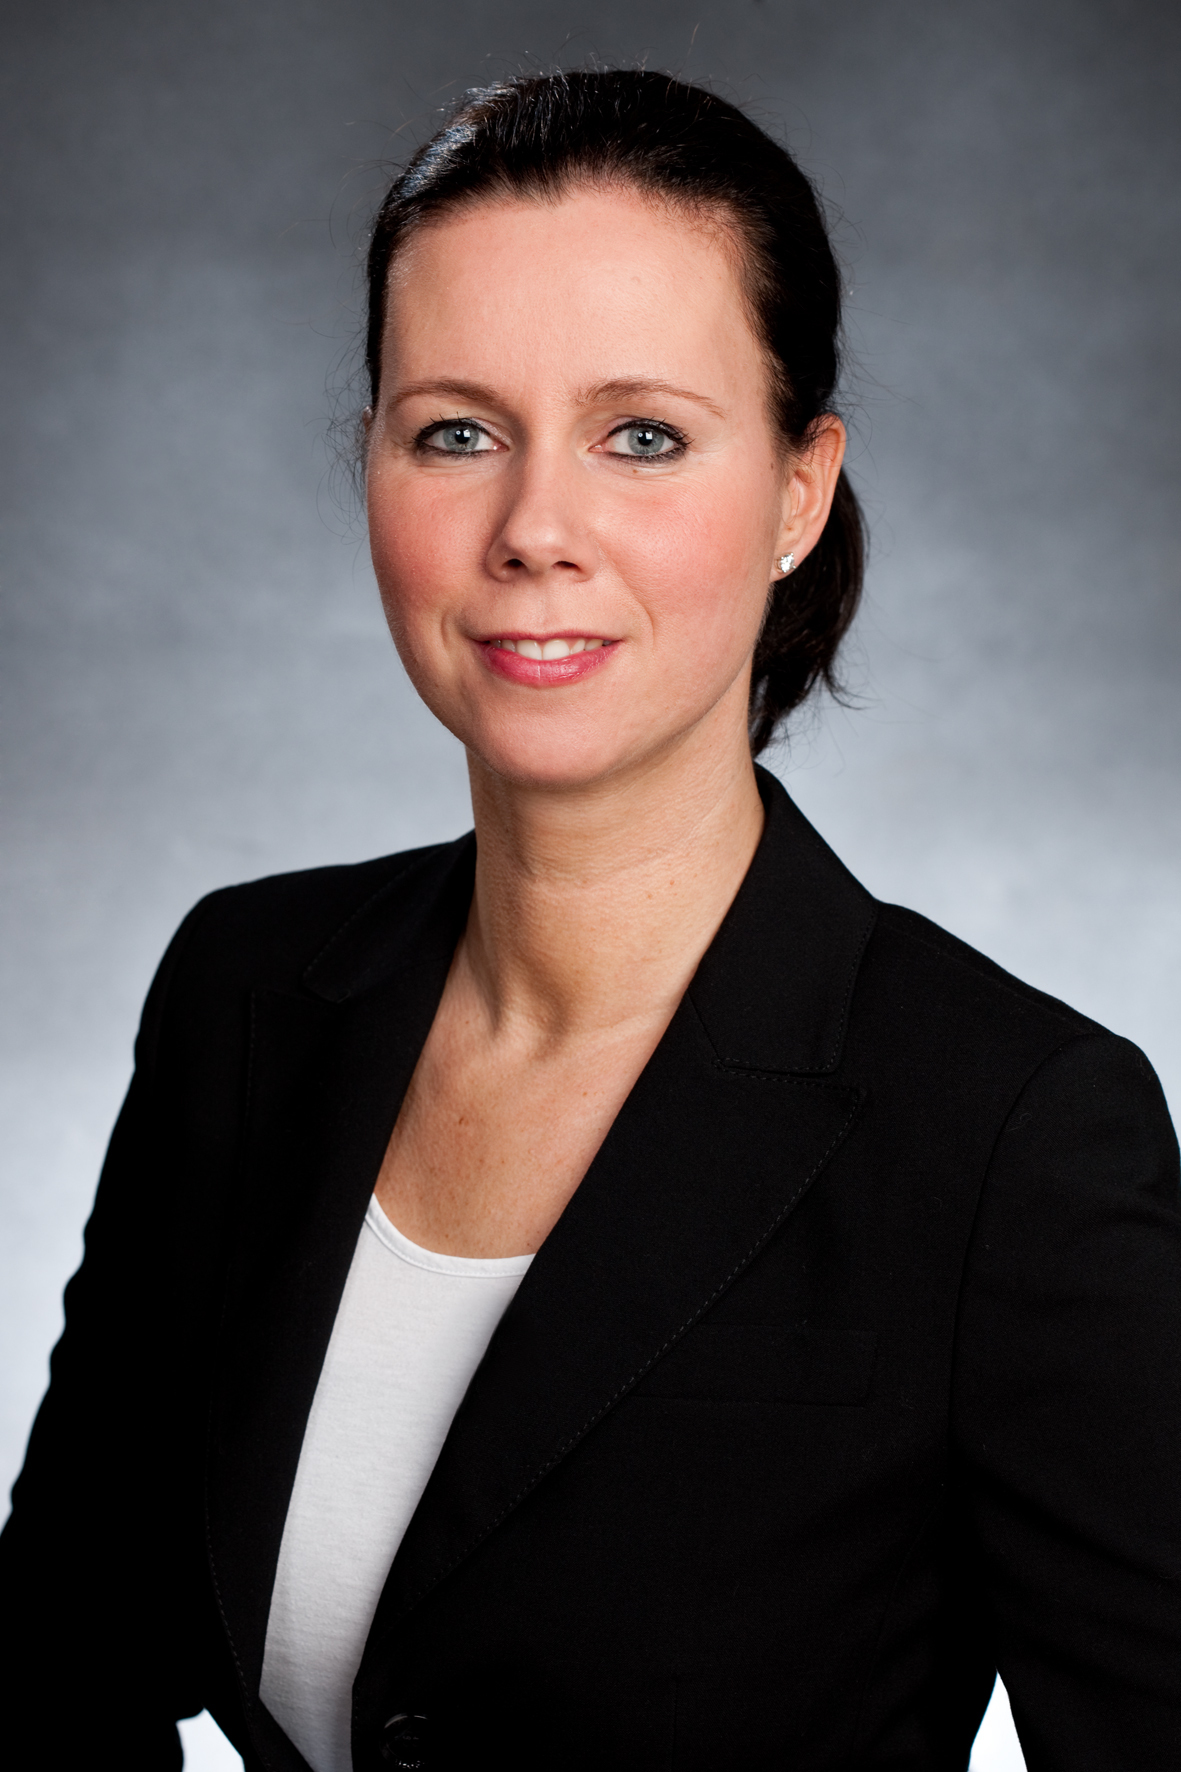 Nathalie Kronenberg takes over as Head of Key Account Management for the B2B segment (Photo: Business Wire)